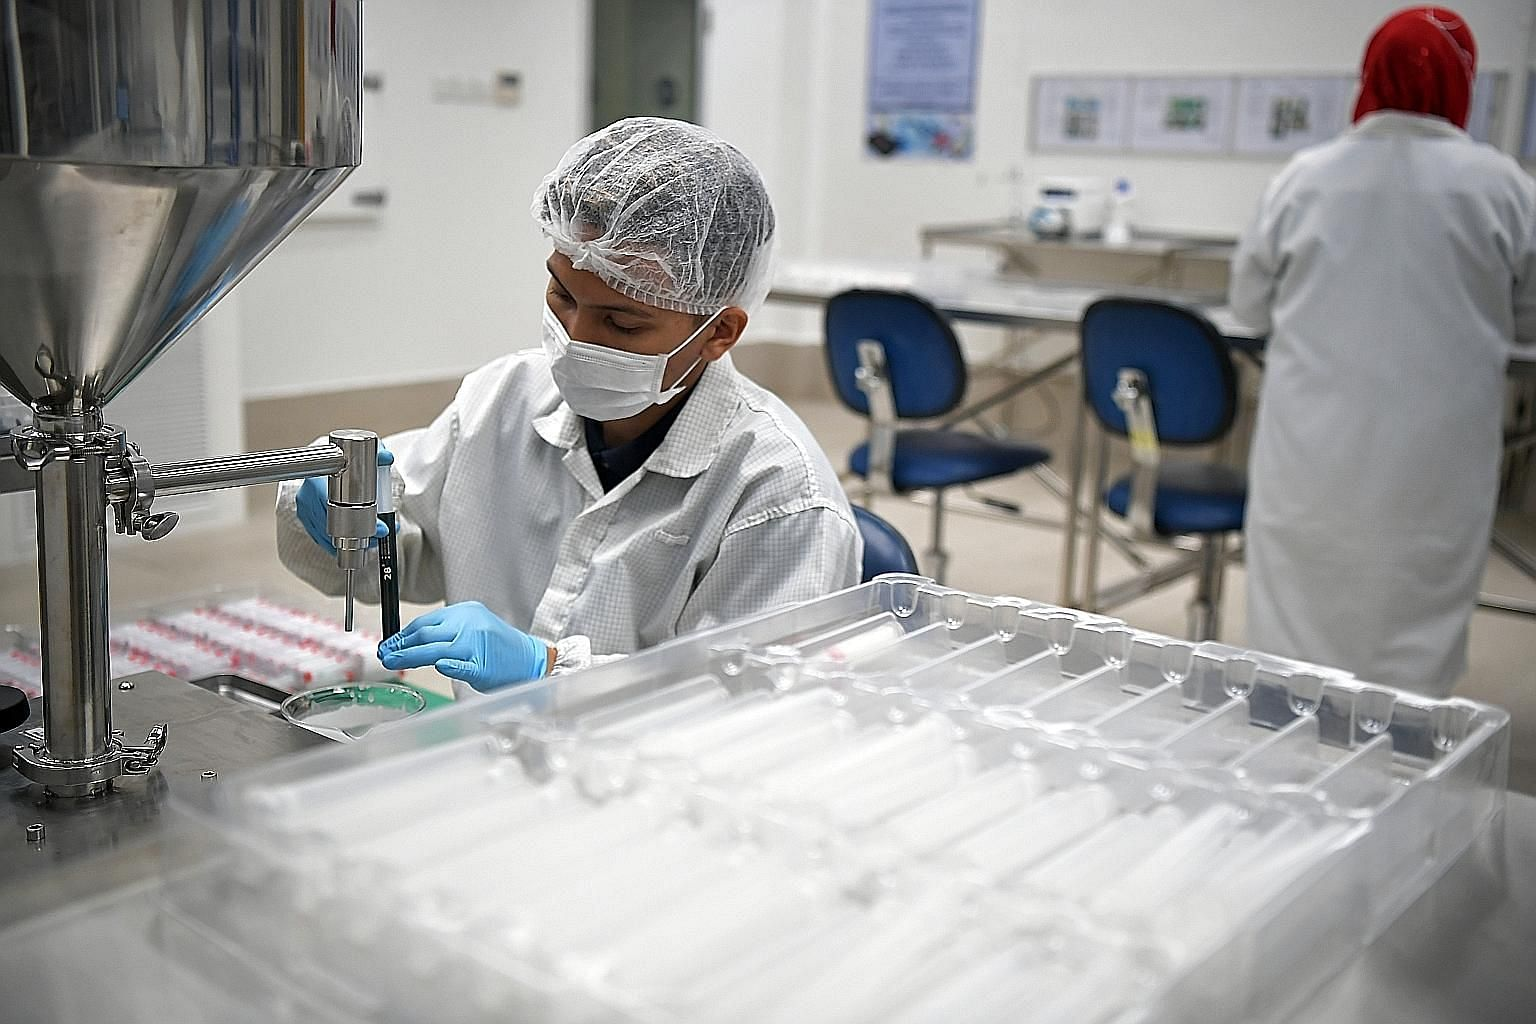 Biomedical manufacturing output jumped by 21.9 per cent year on year, boosted by a 26.2 per cent increase in the pharmaceutical segment. Output from the medical technology segment grew by 10.8 per cent.